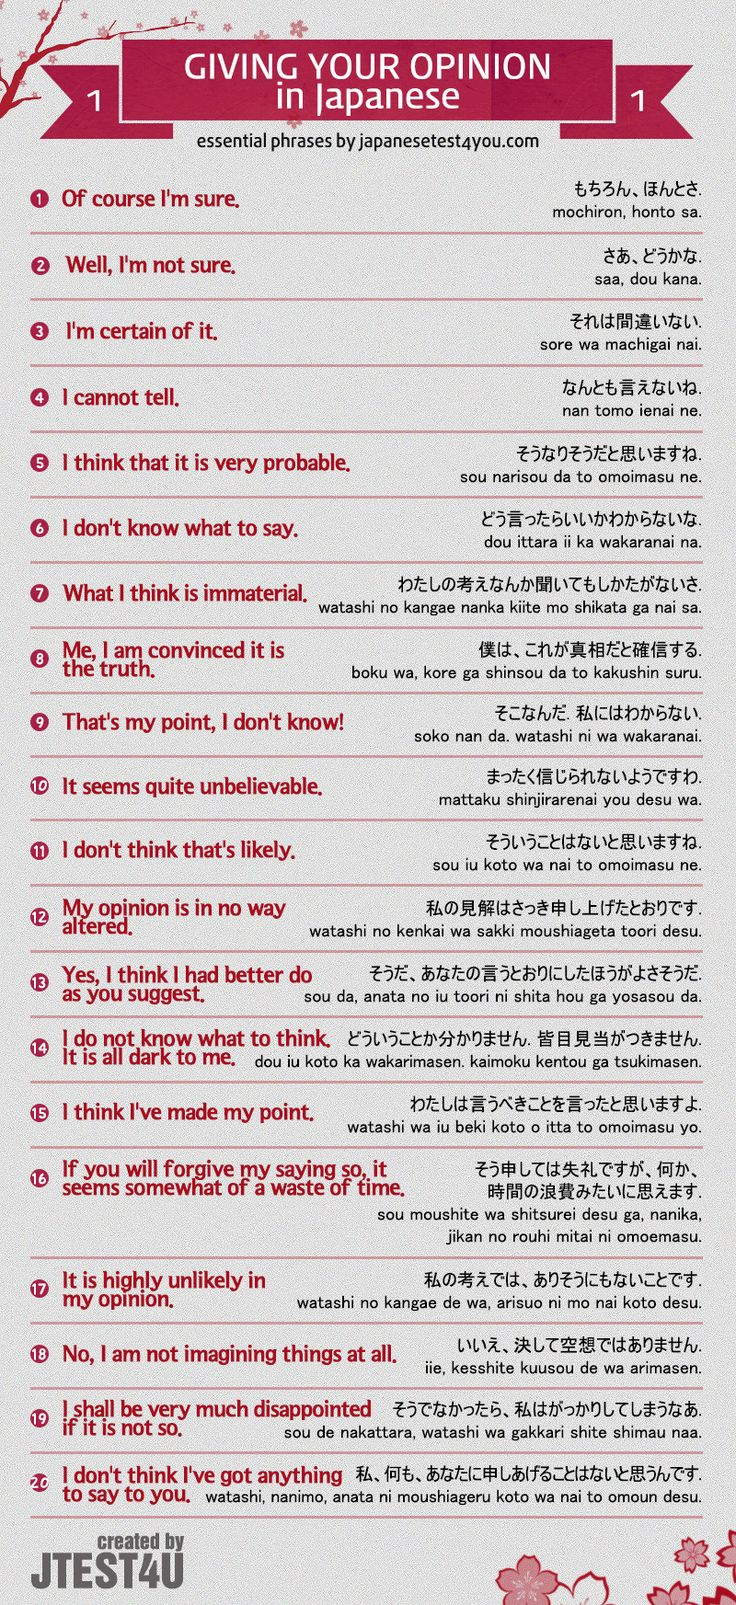 Infographic: how to give someone your opinion in Japanese part 1. http://japanesetest4you.com/infographic-how-to-give-your-opinion-in-japanese-part-1/